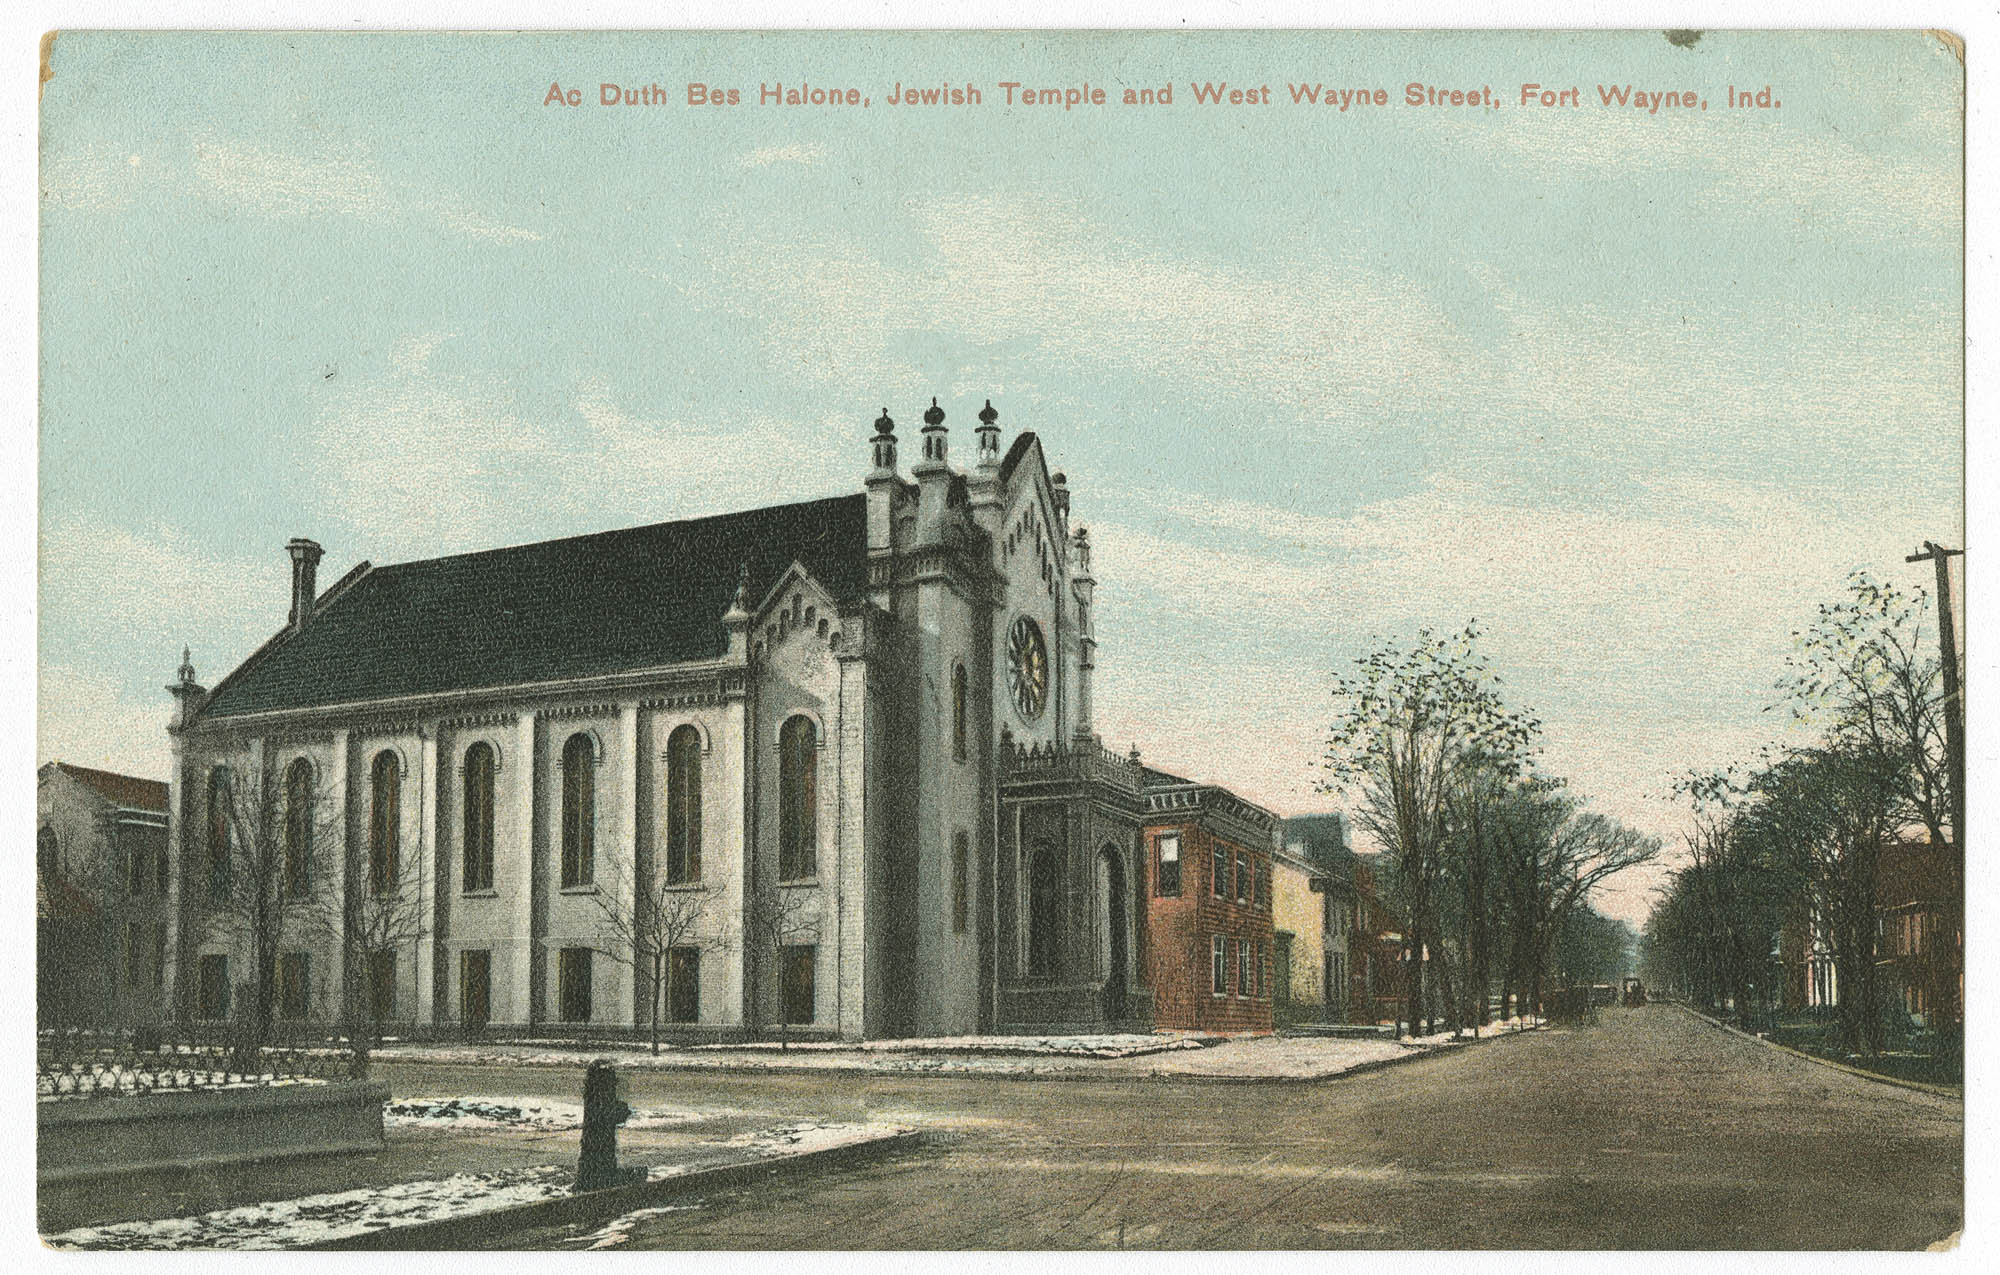 Ac Duth Bes Halone, Jewish Temple and West Wayne Street, Fort Wayne, Ind.